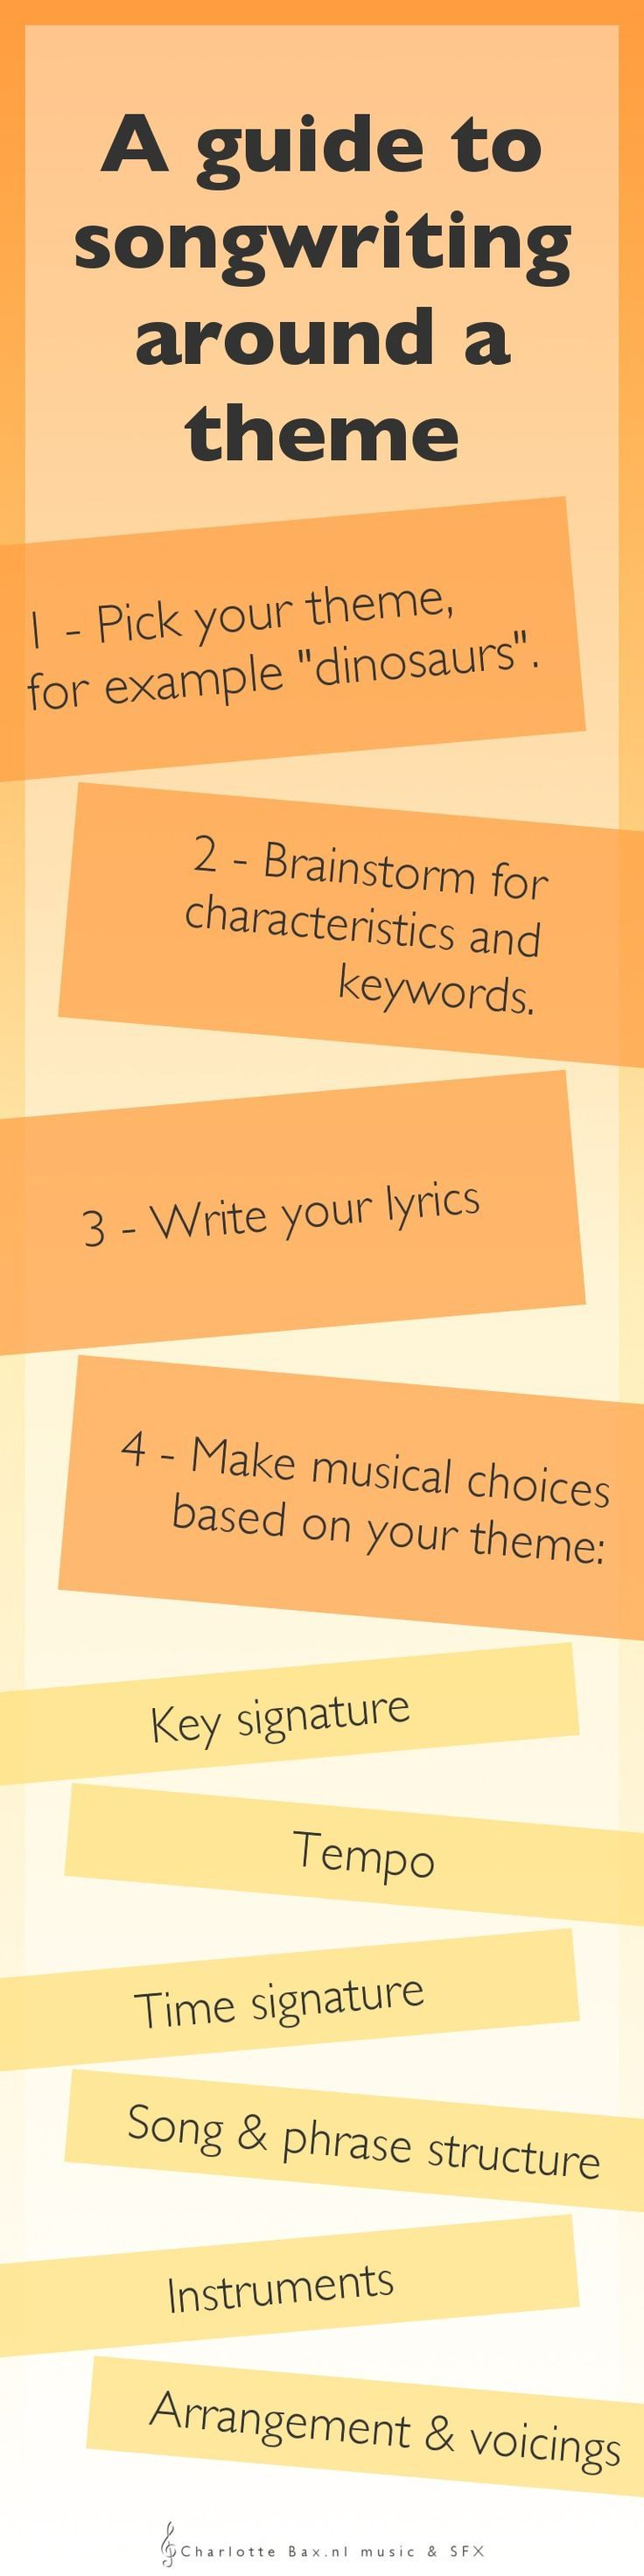 tips on writing music Free songwriting tips, articles and ebooks on music theory and lyrics writing also, includes courses on how to write songs and lyrics.